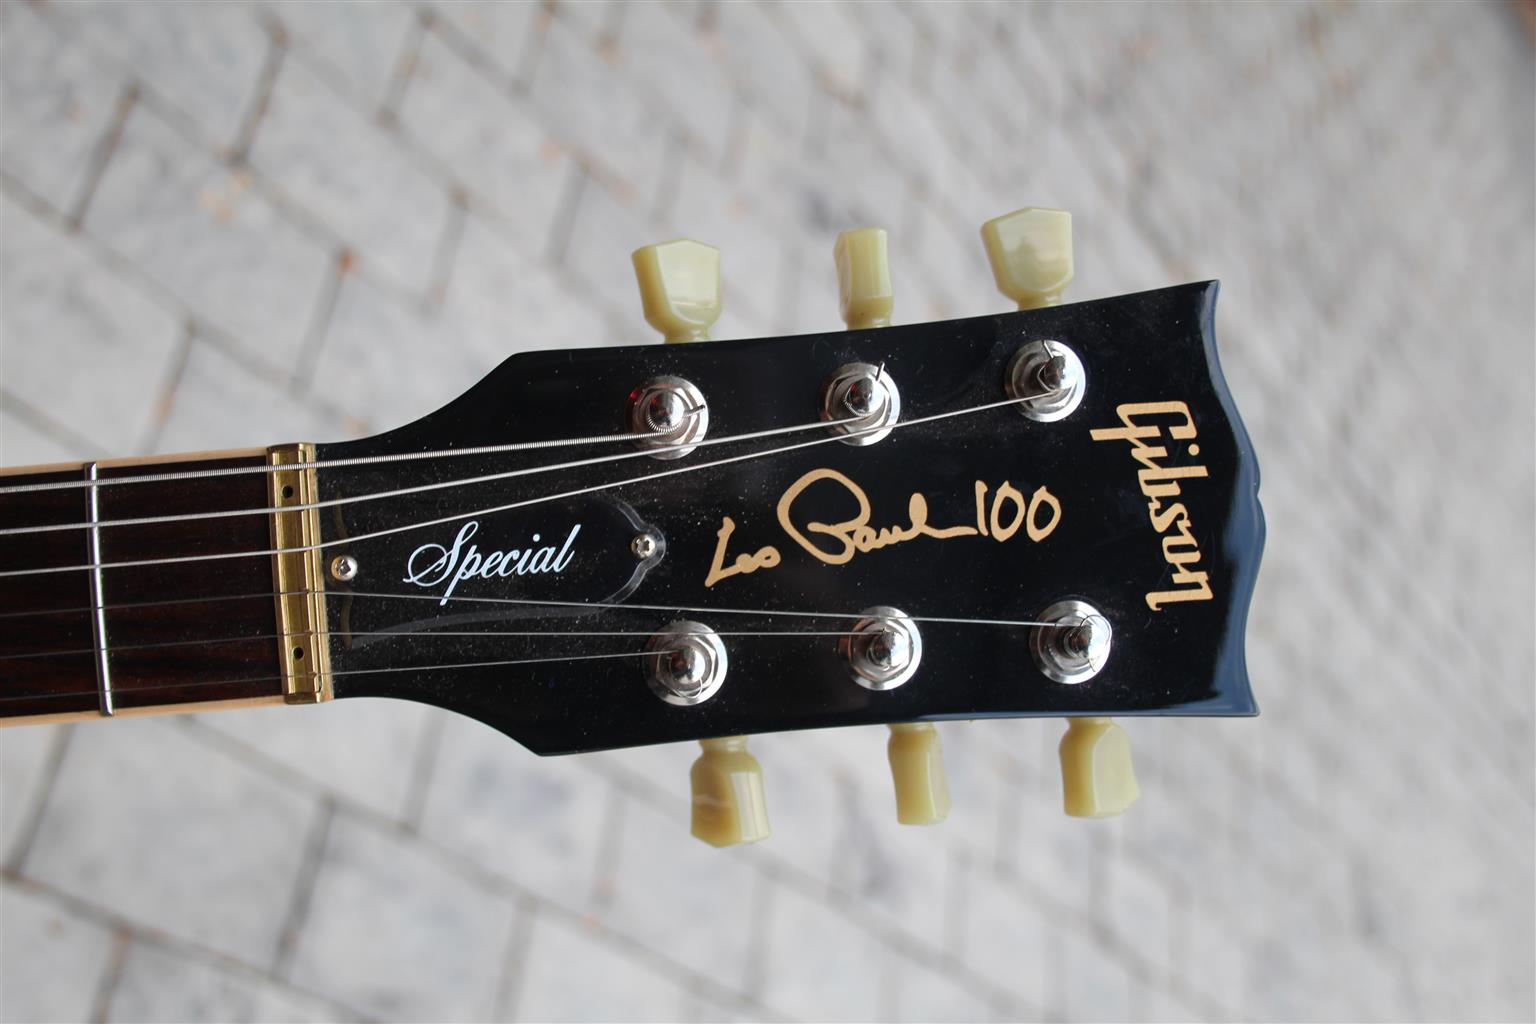 Gibson Les Paul Special, 100th Anniversary model